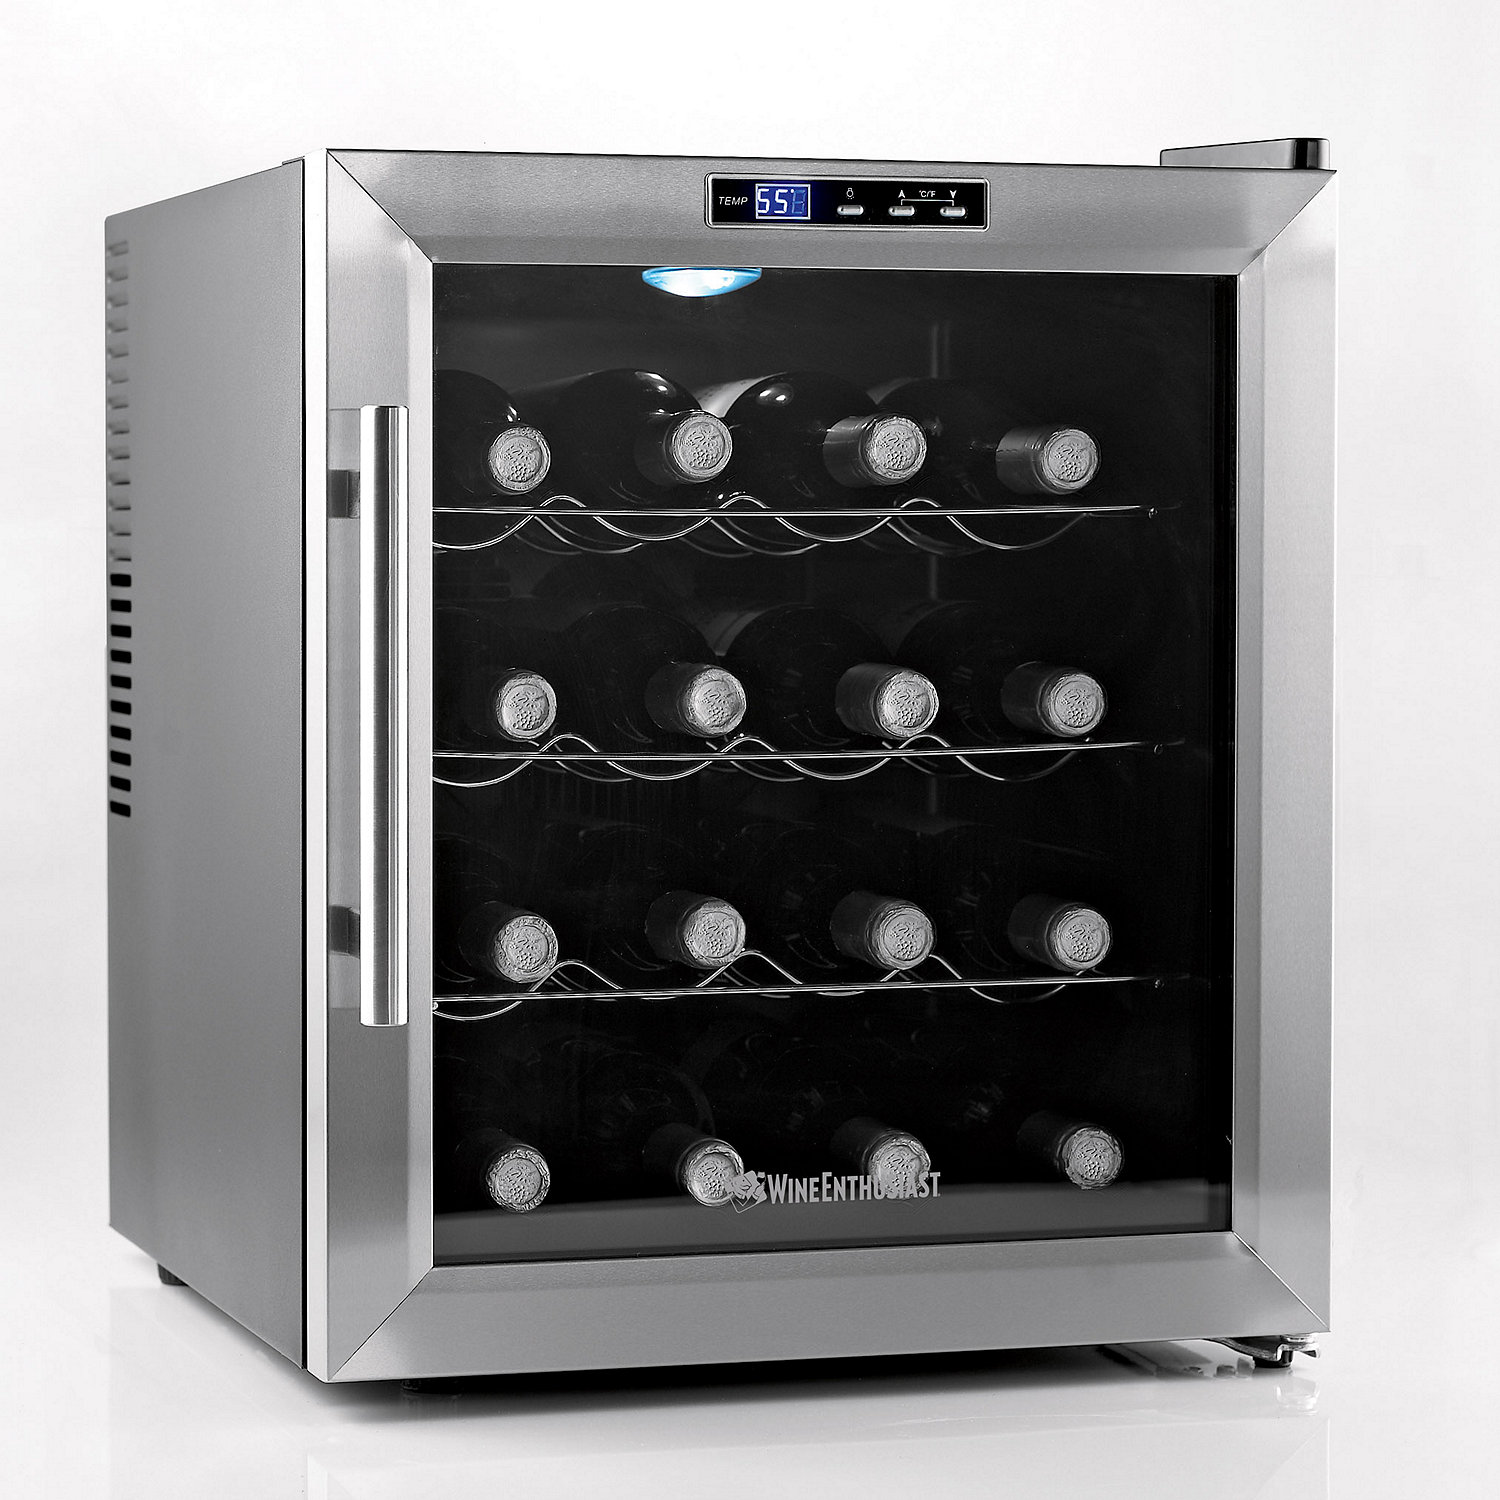 thermoelectric cooler aw countertop wine bottlewine newair bottle